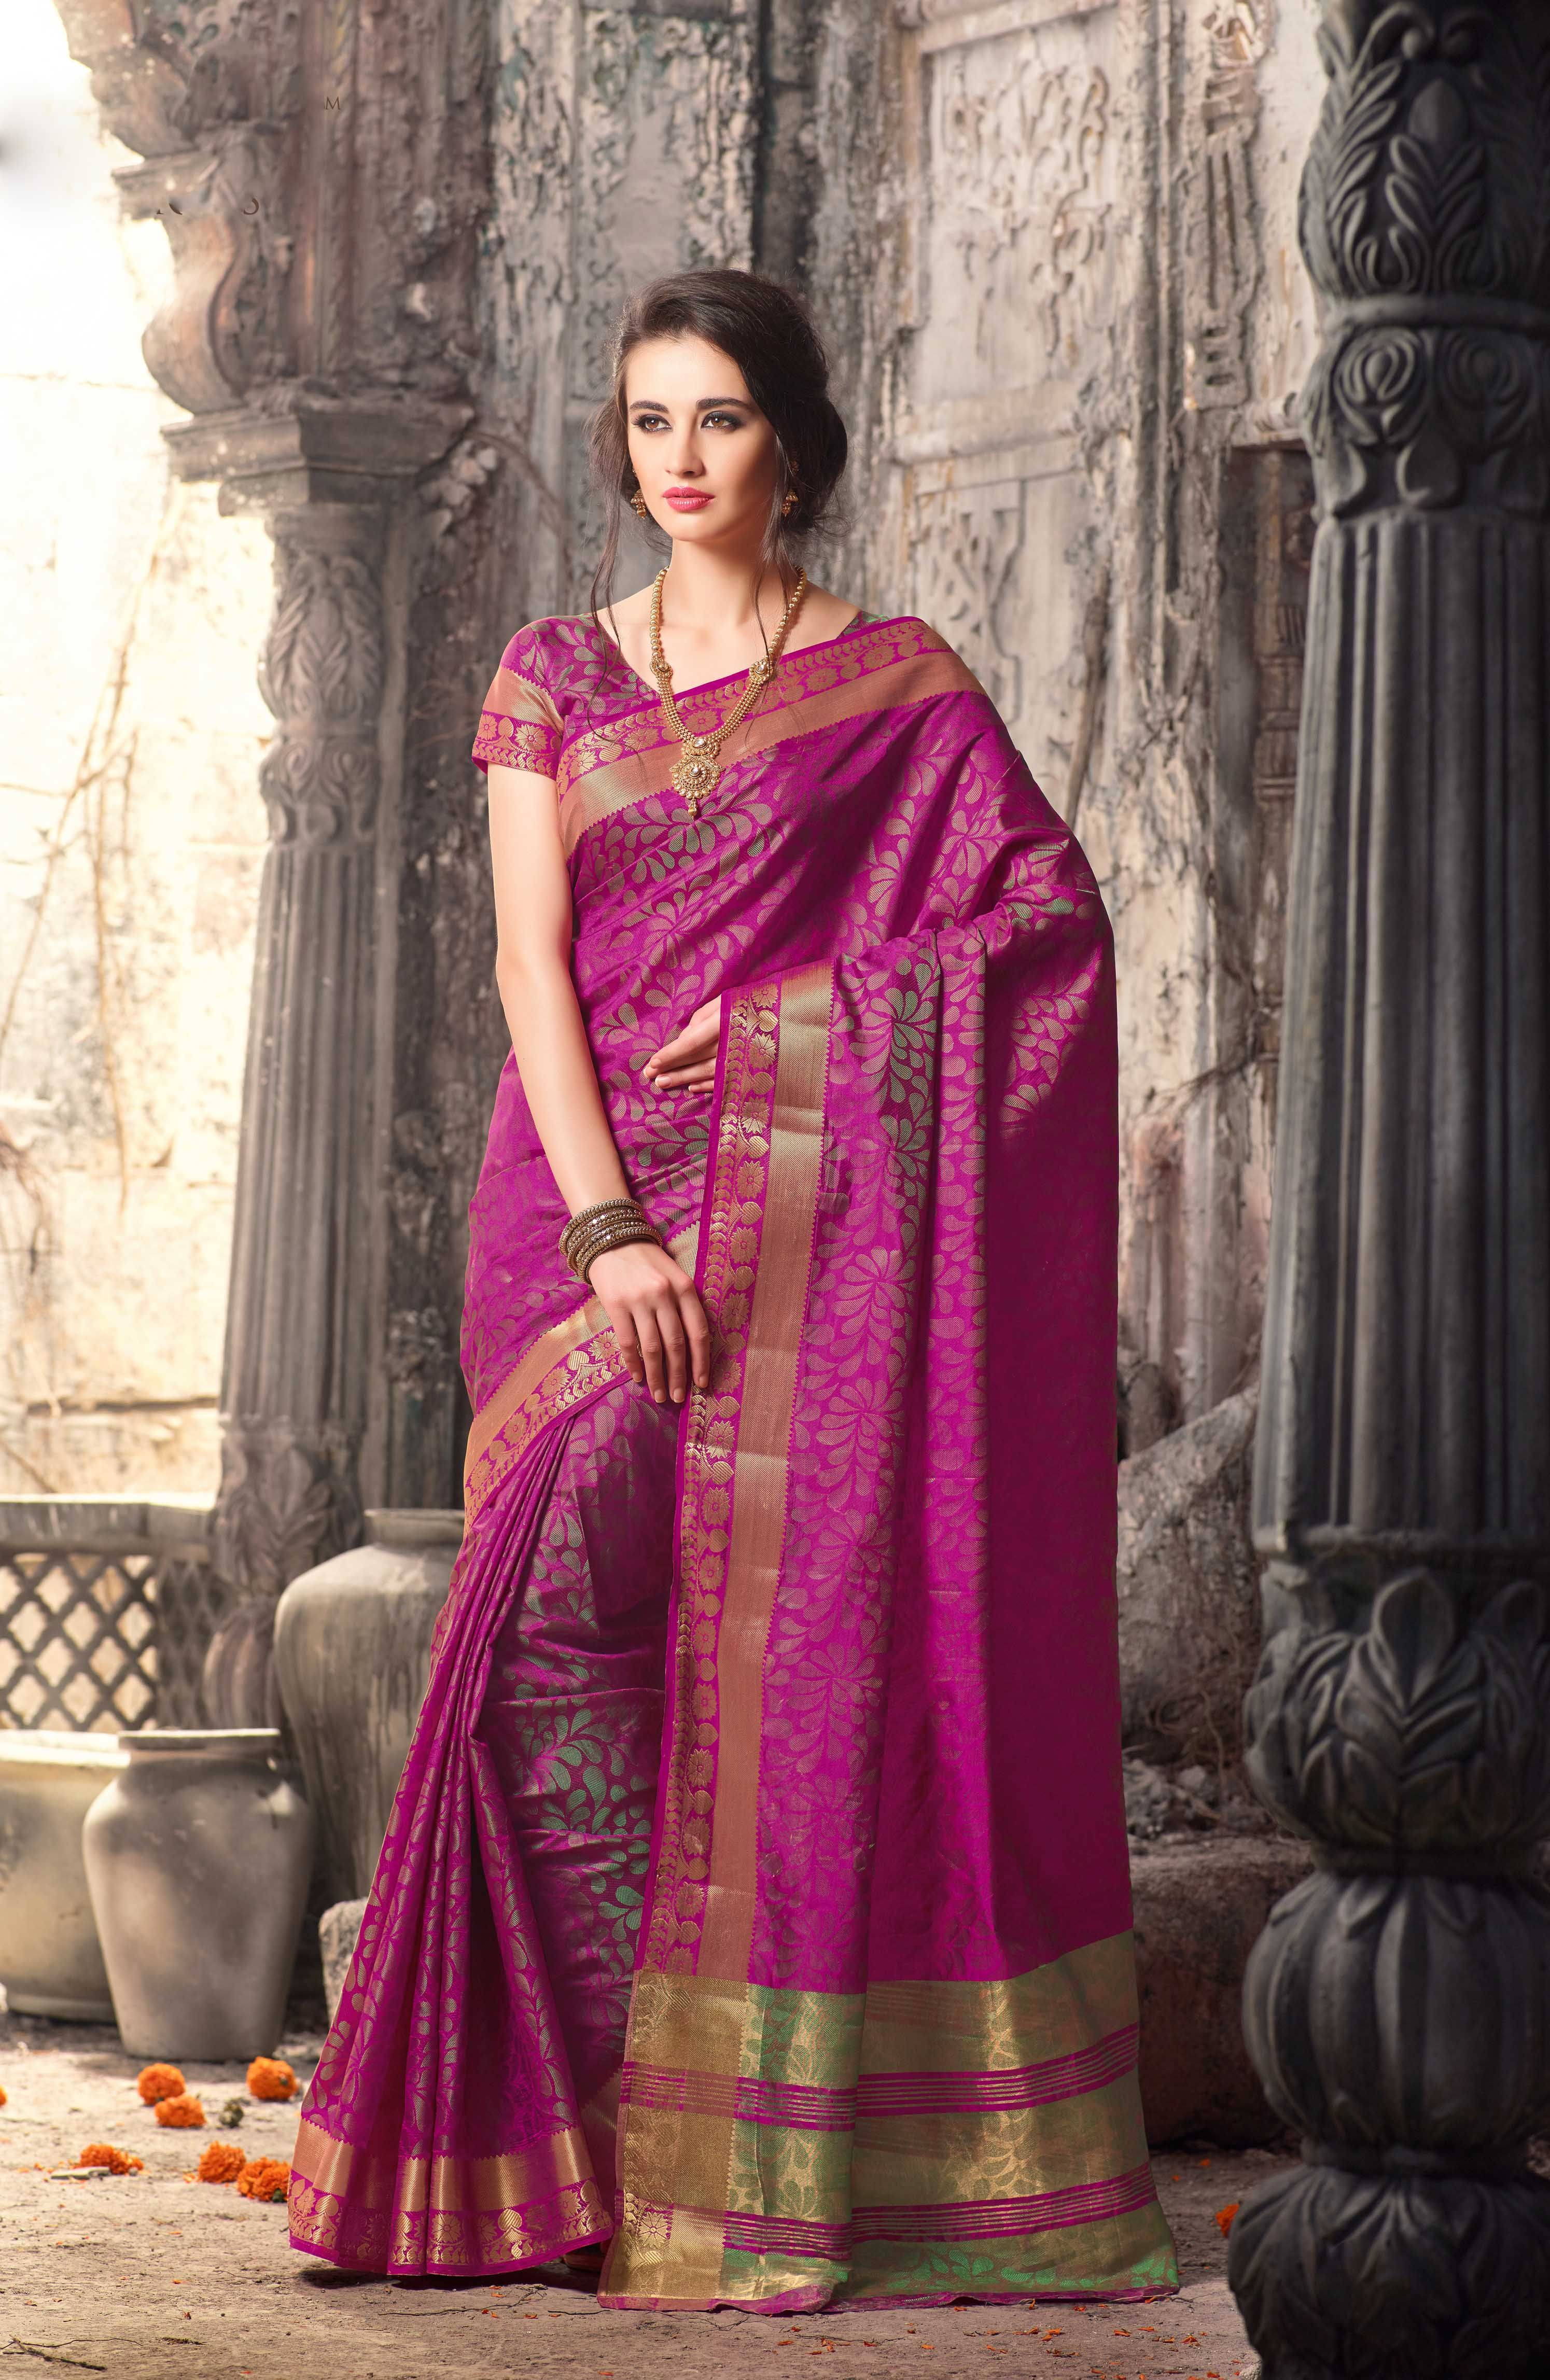 f885ebdbed0ee6 Buy Sarees online, best Prices in Usa. Shop Designer, Silk, Cotton, Lehenga  Sarees, Half Sarees and Party Wear Sarees at Mirraw.